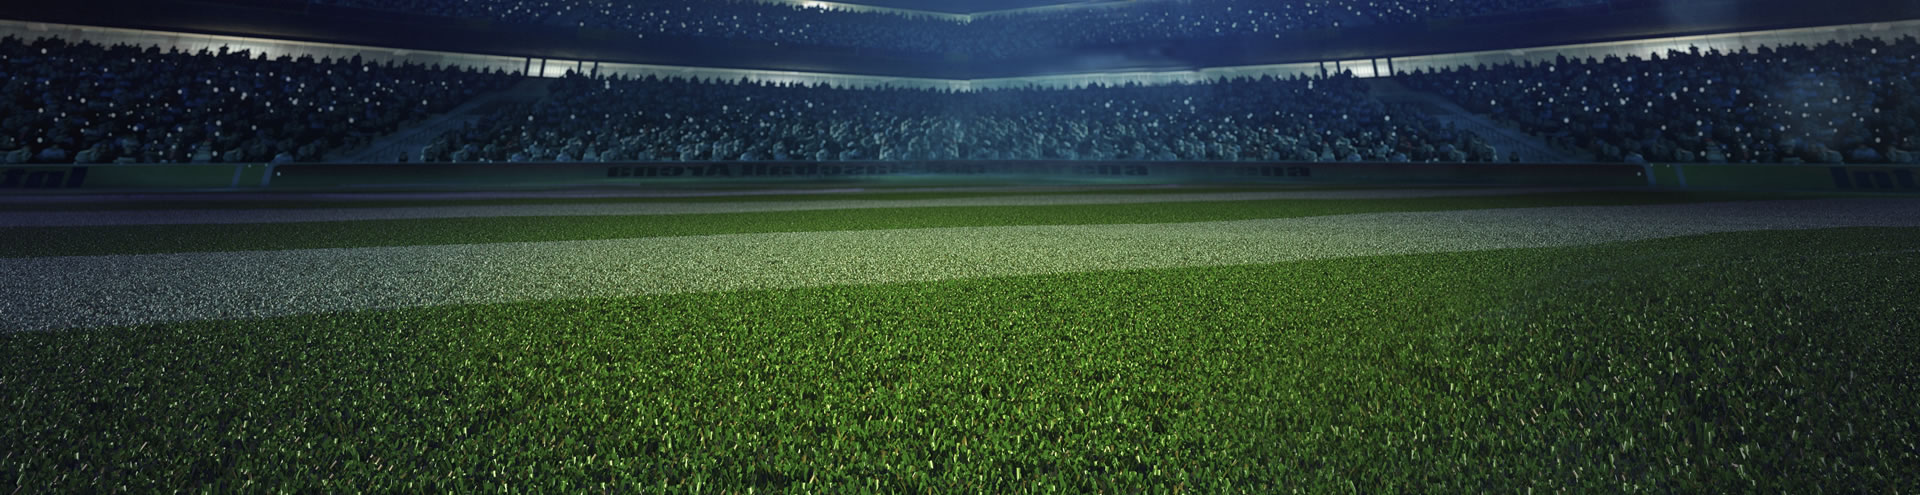 Fifa Preferred Producer For High Quality Football Artificial Turf